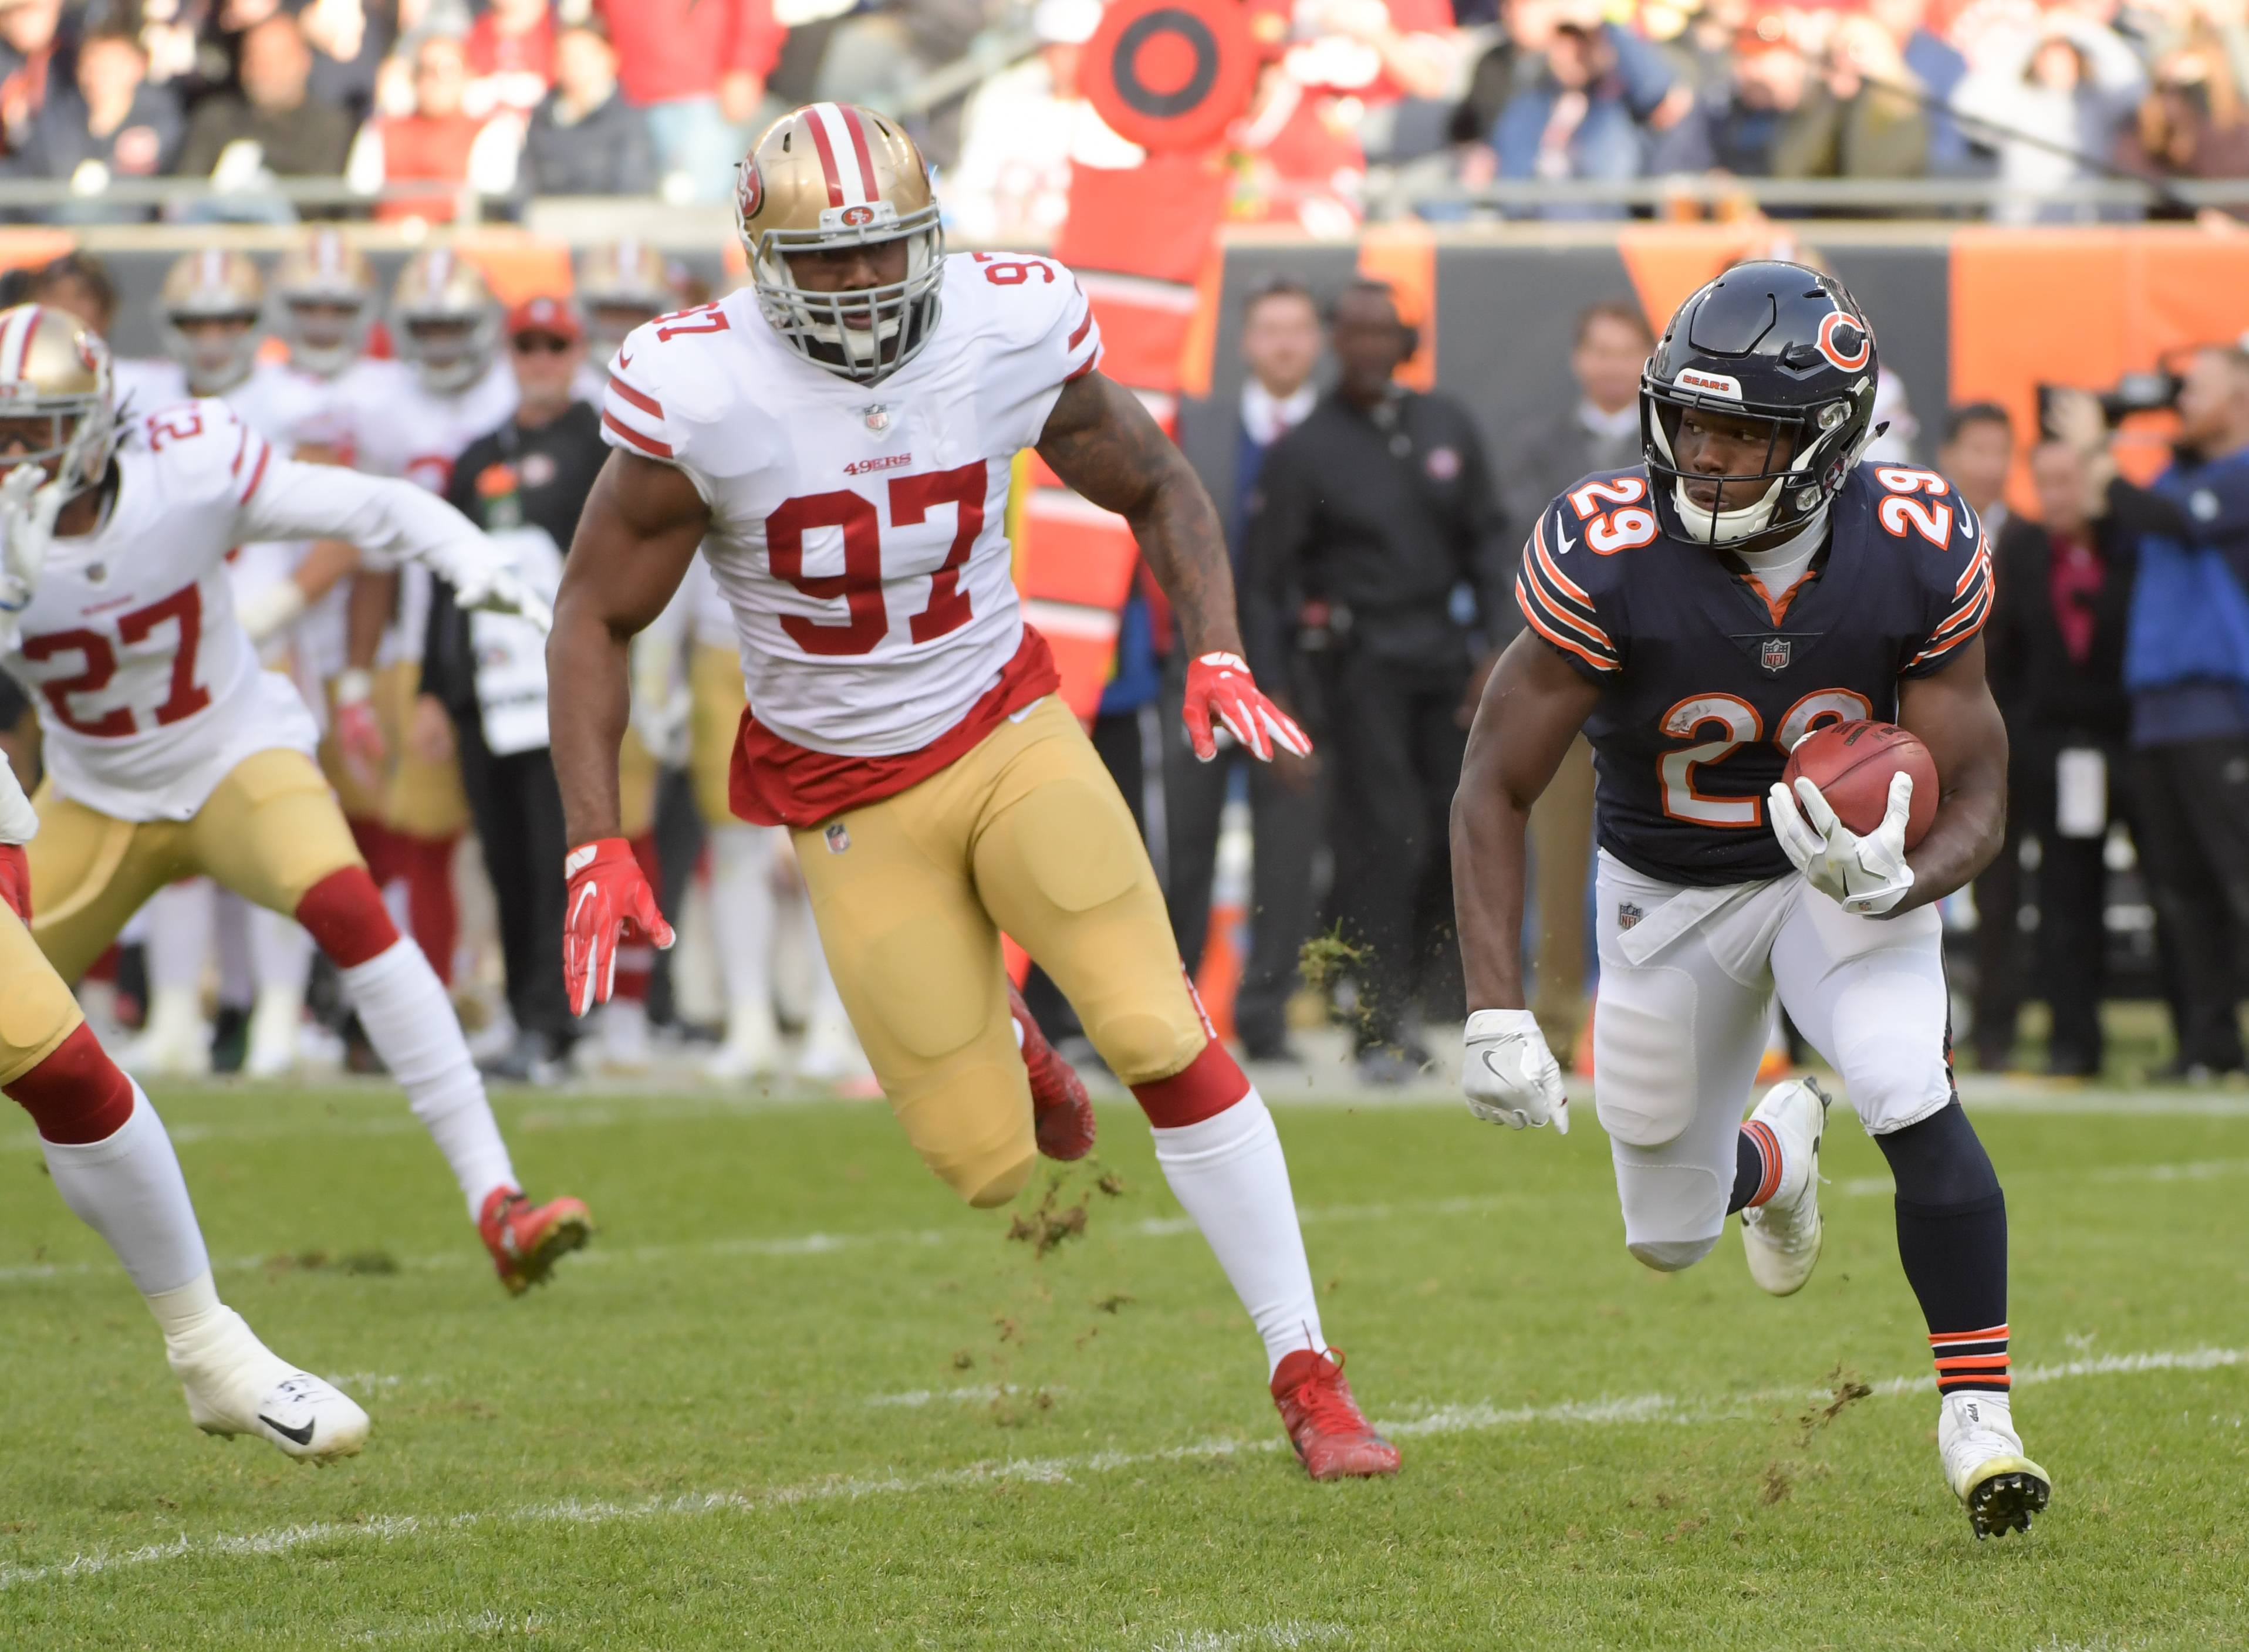 Mark Black/mblack@dailyherald.comChicago Bears' running back Tarik Cohen (29) scrambles for some yards against the San Francisco 49ers at Soldier Field on December 3, 2017.